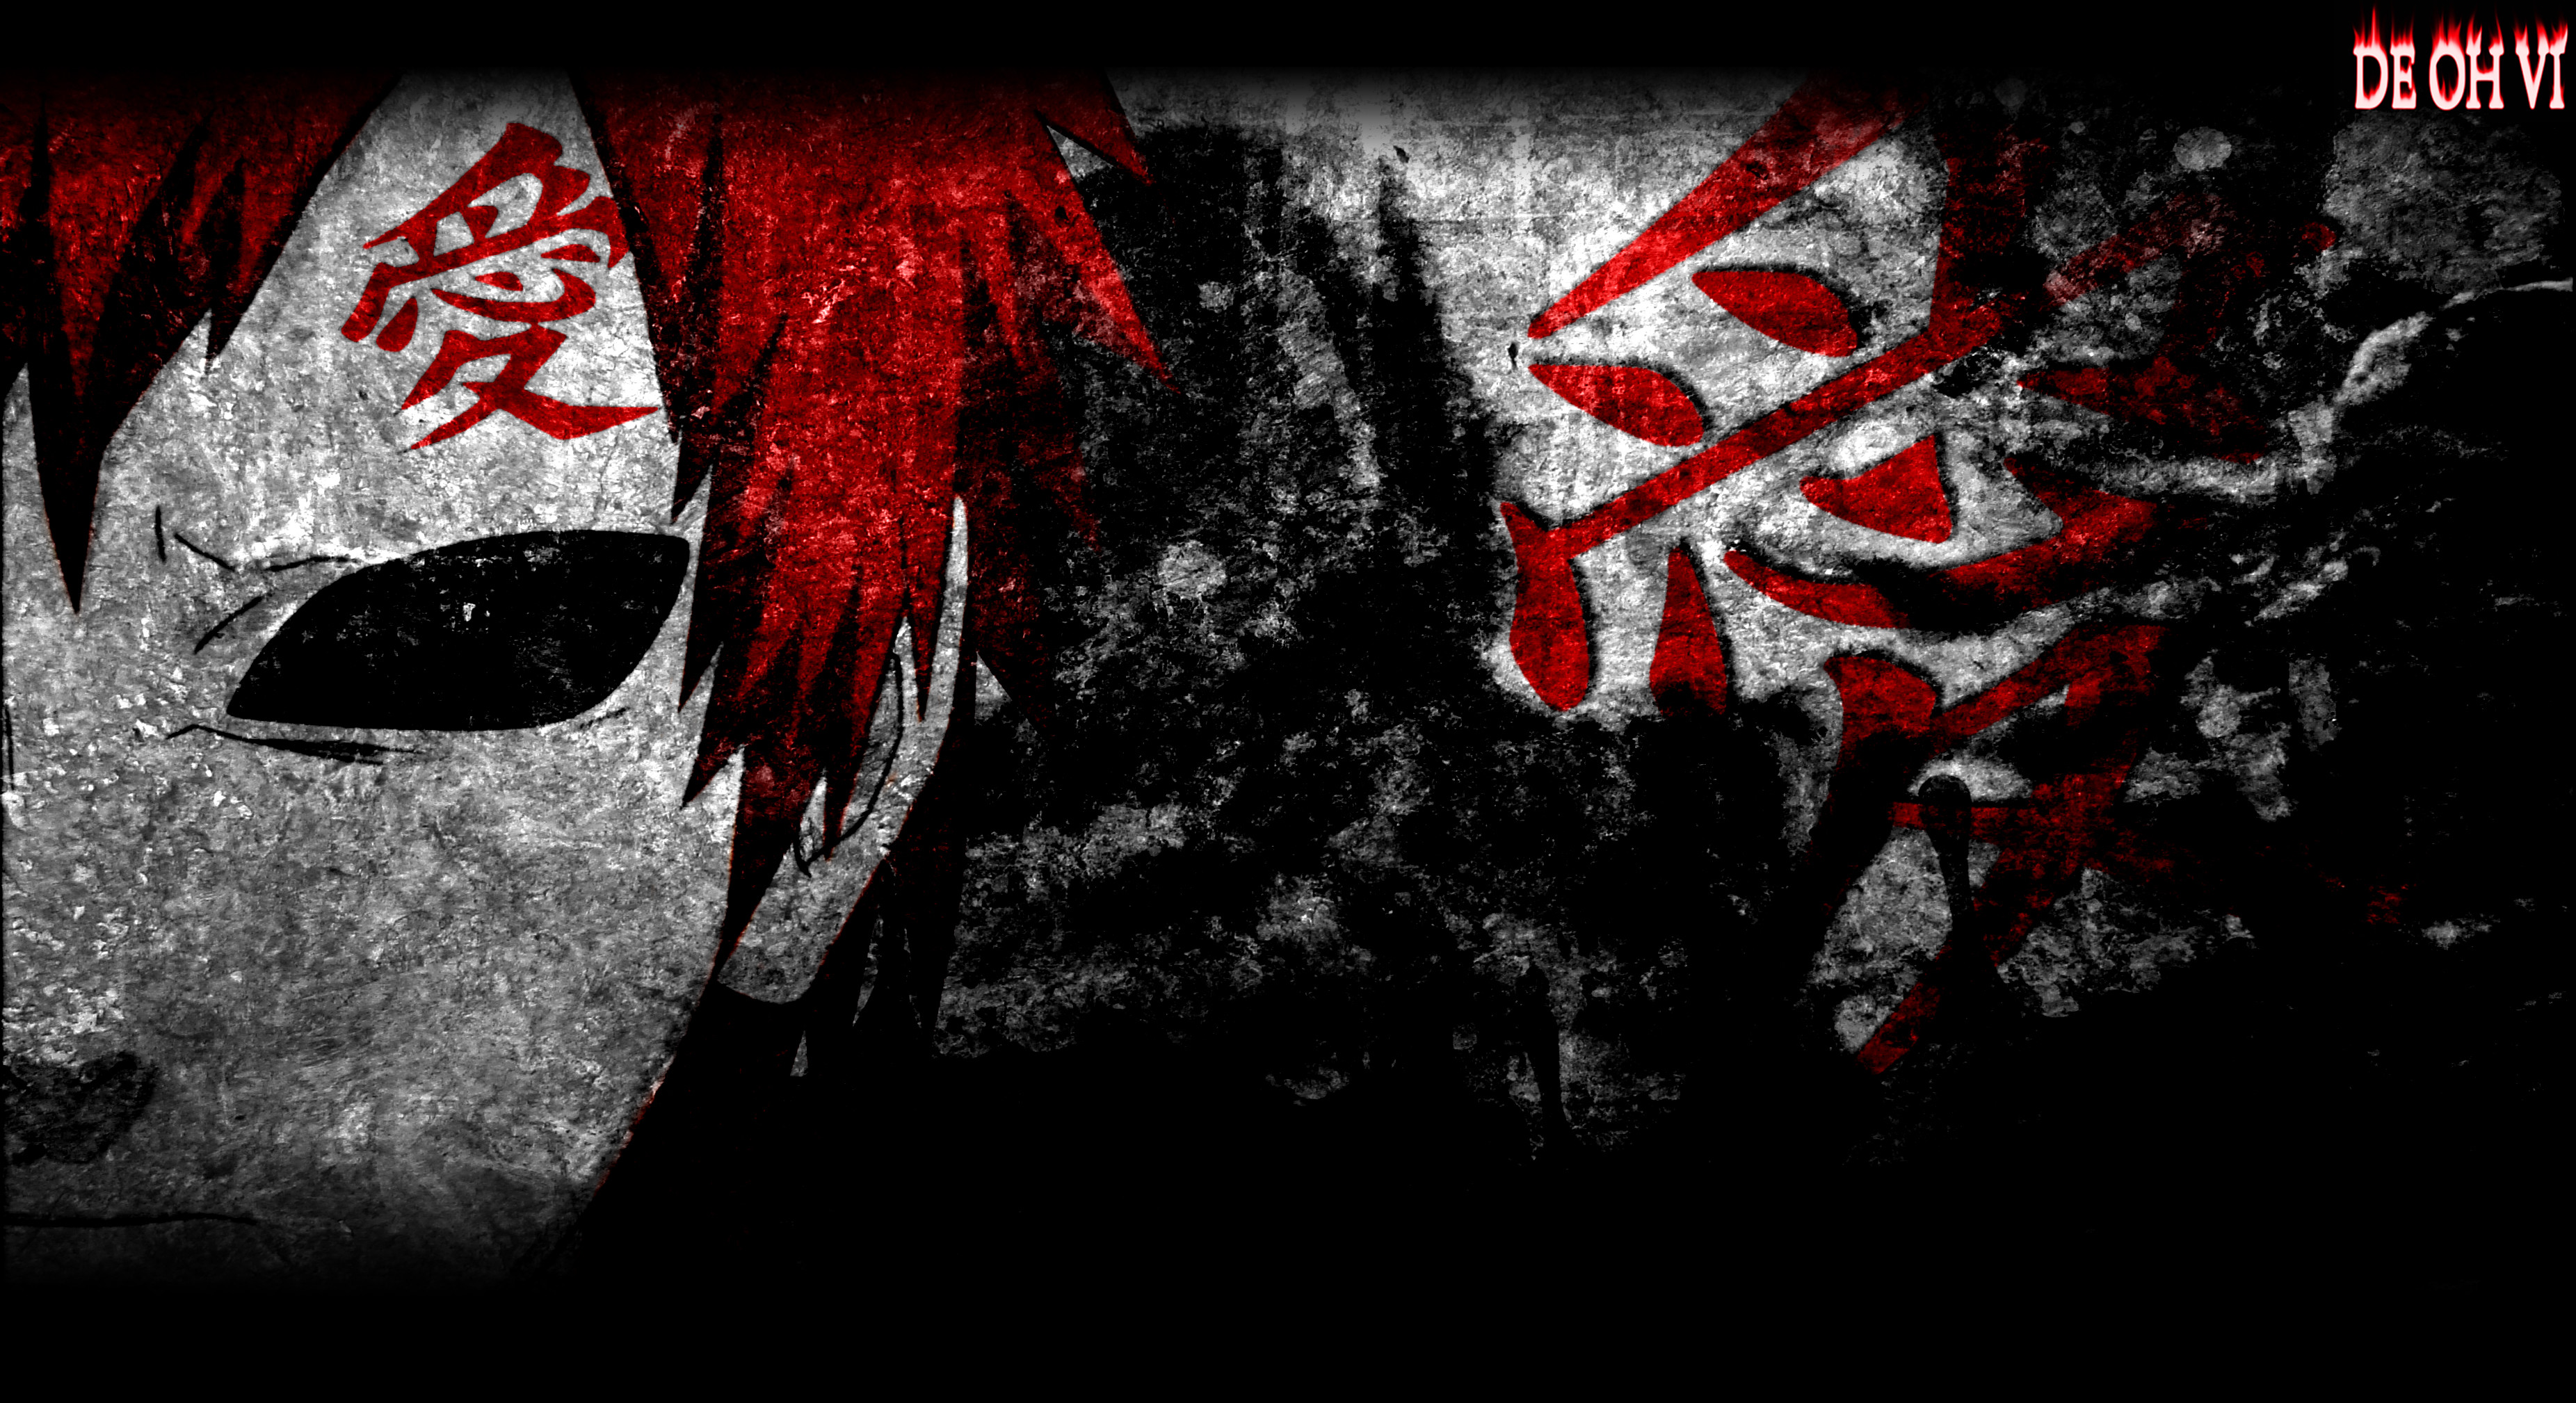 3704x2018 gaara wallpaper by DEOHVI gaara wallpaper by DEOHVI